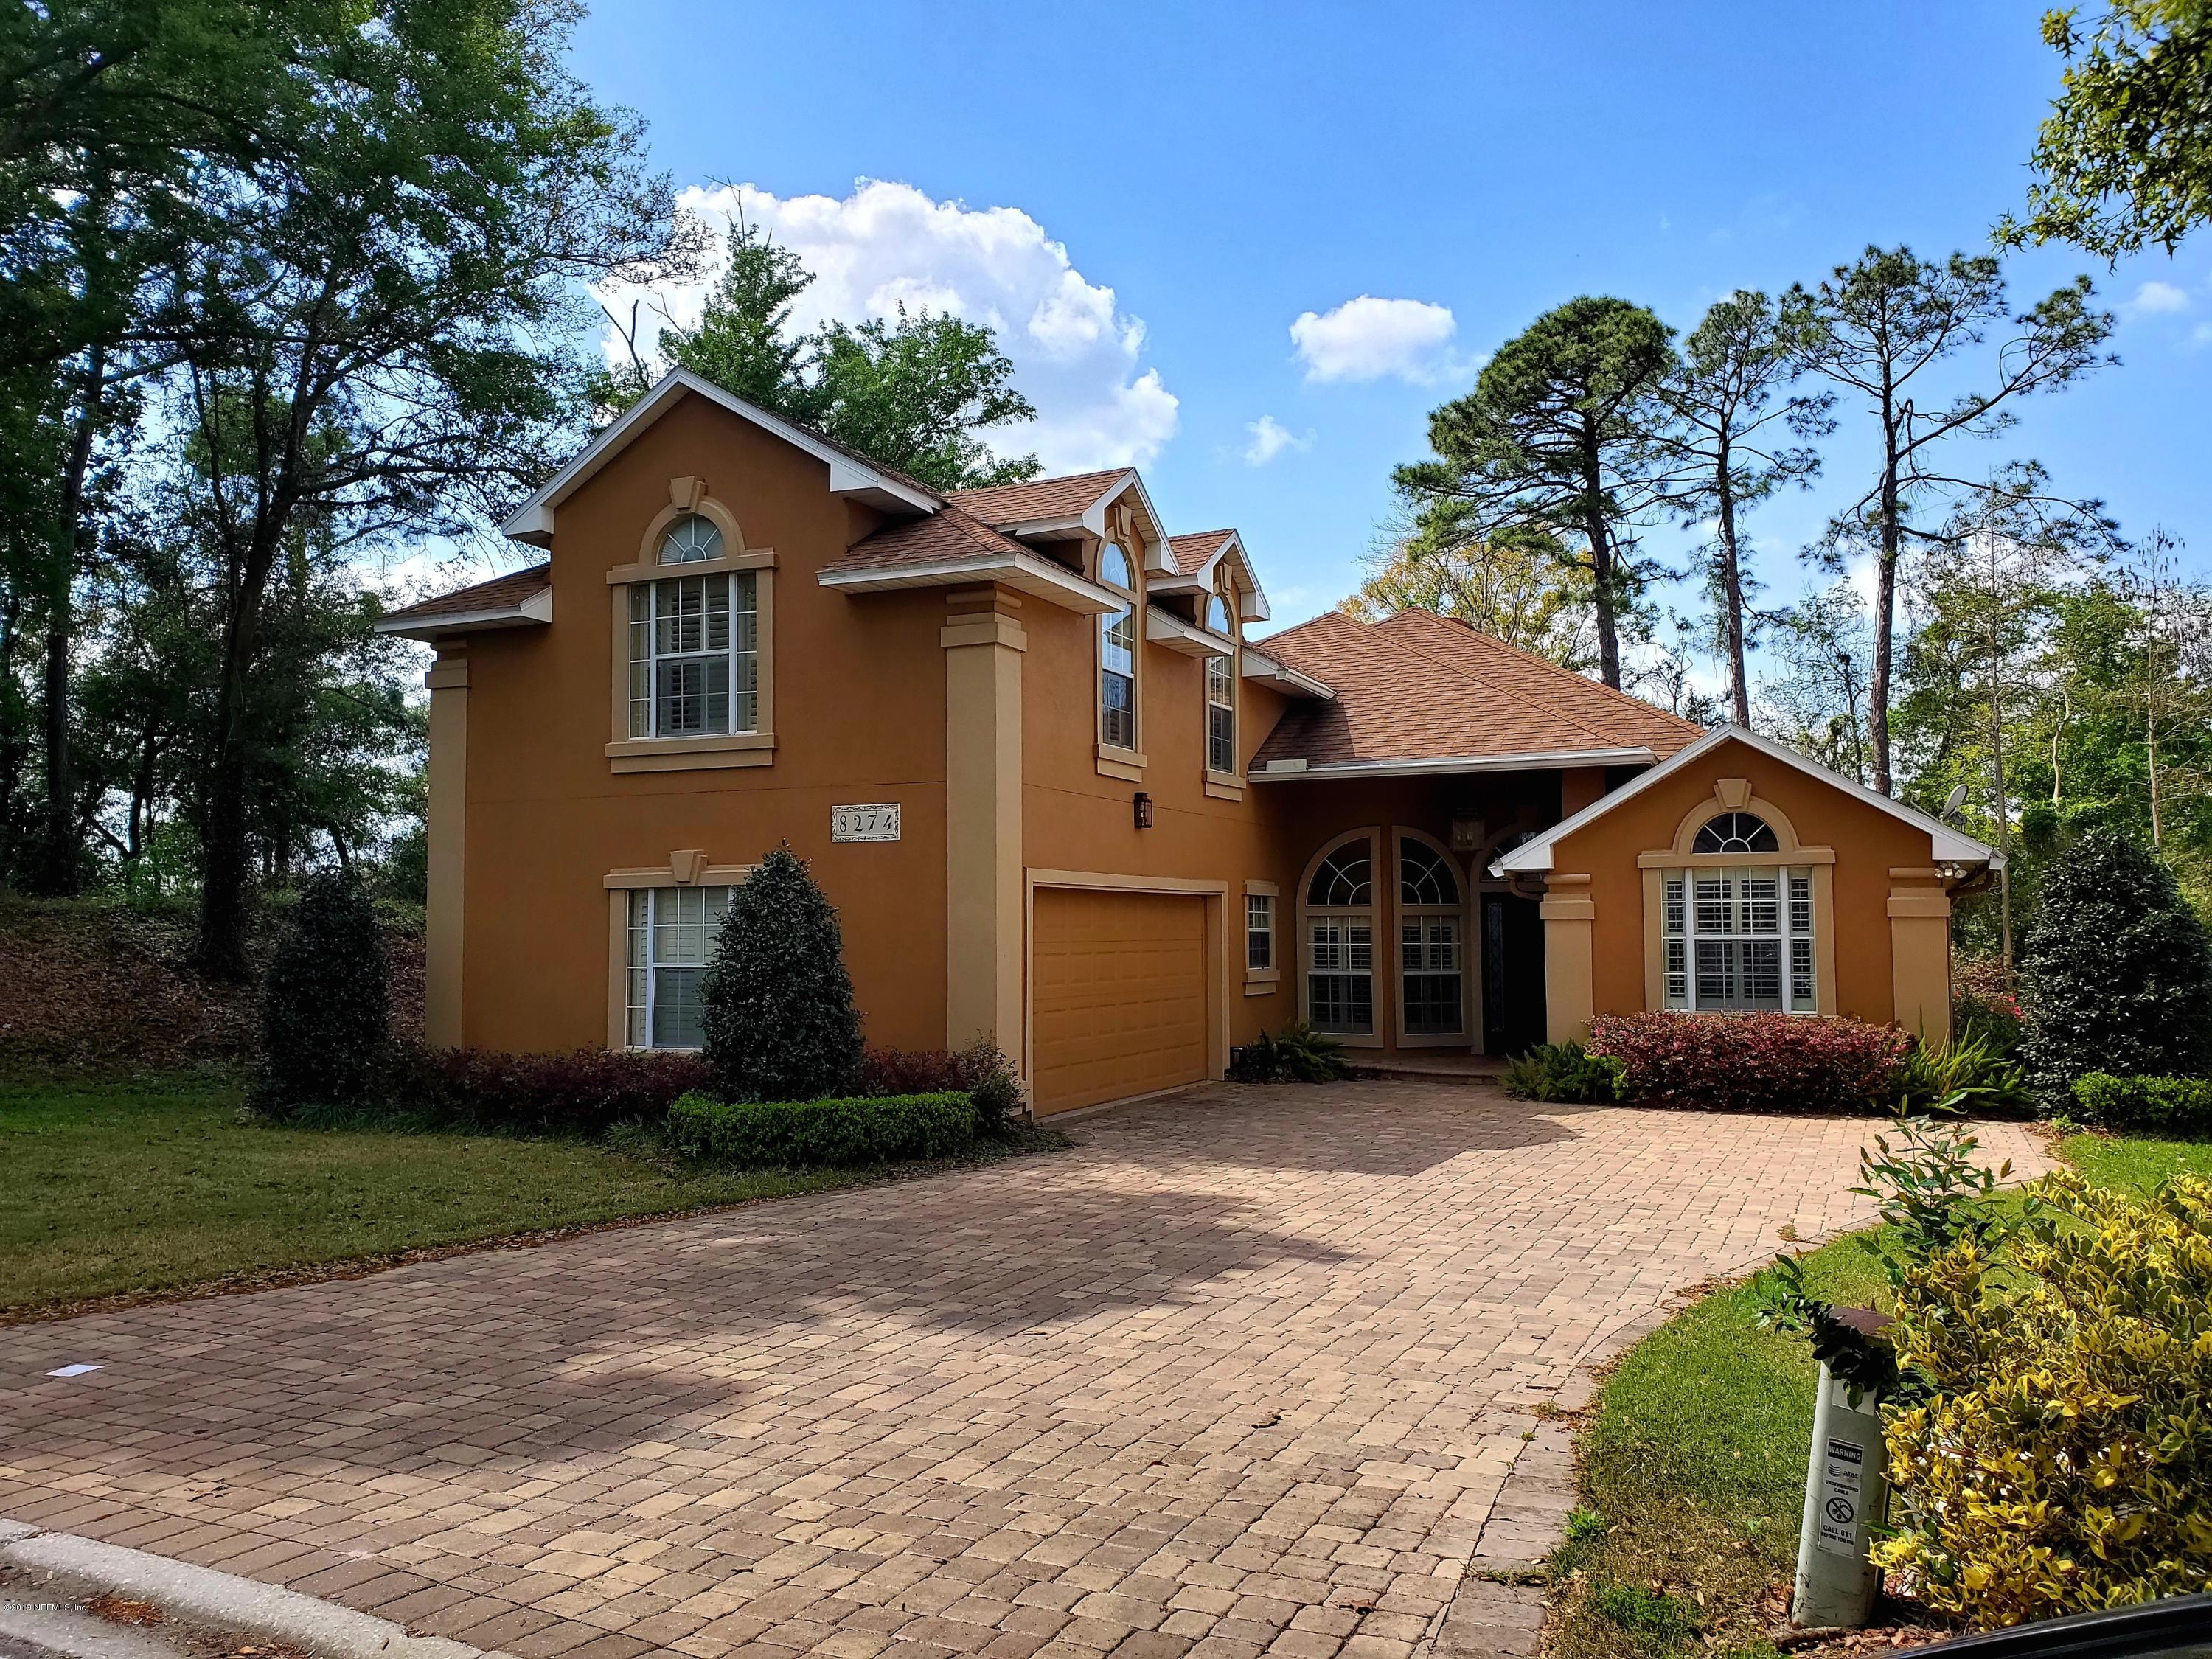 8274 SHADETREE, JACKSONVILLE, FLORIDA 32256, 4 Bedrooms Bedrooms, ,3 BathroomsBathrooms,Residential - single family,For sale,SHADETREE,985307